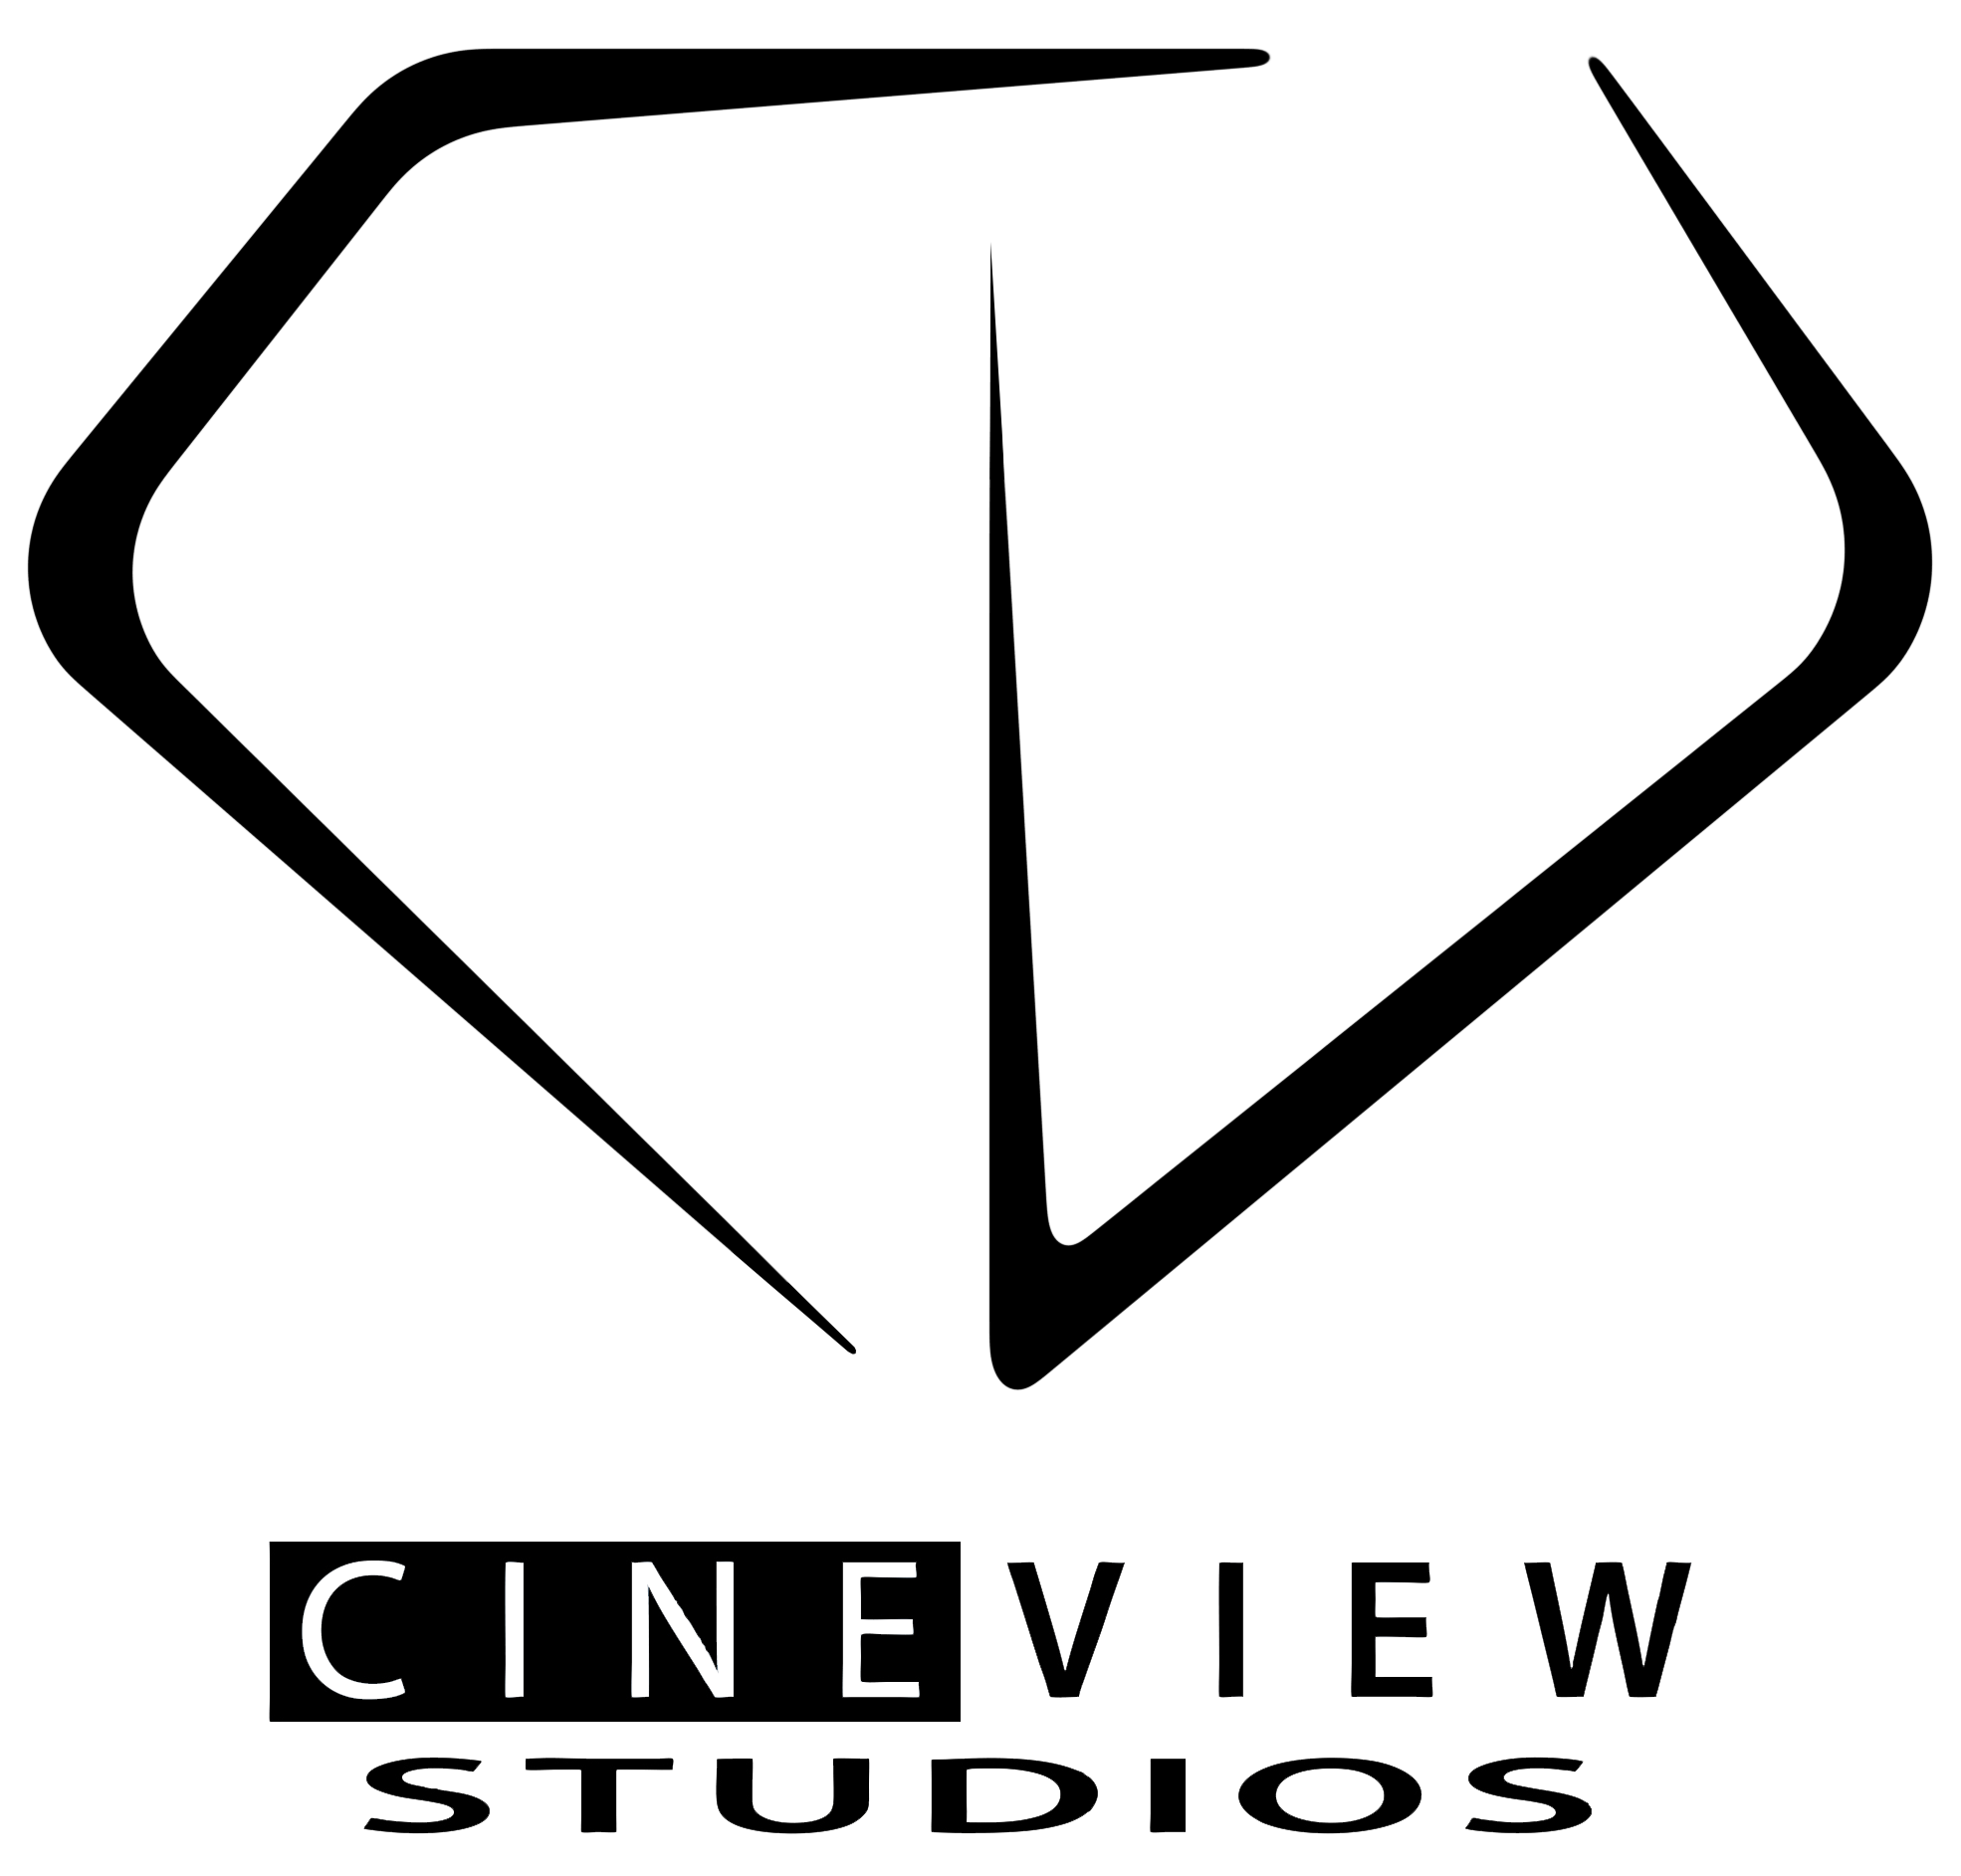 cineview logo.png